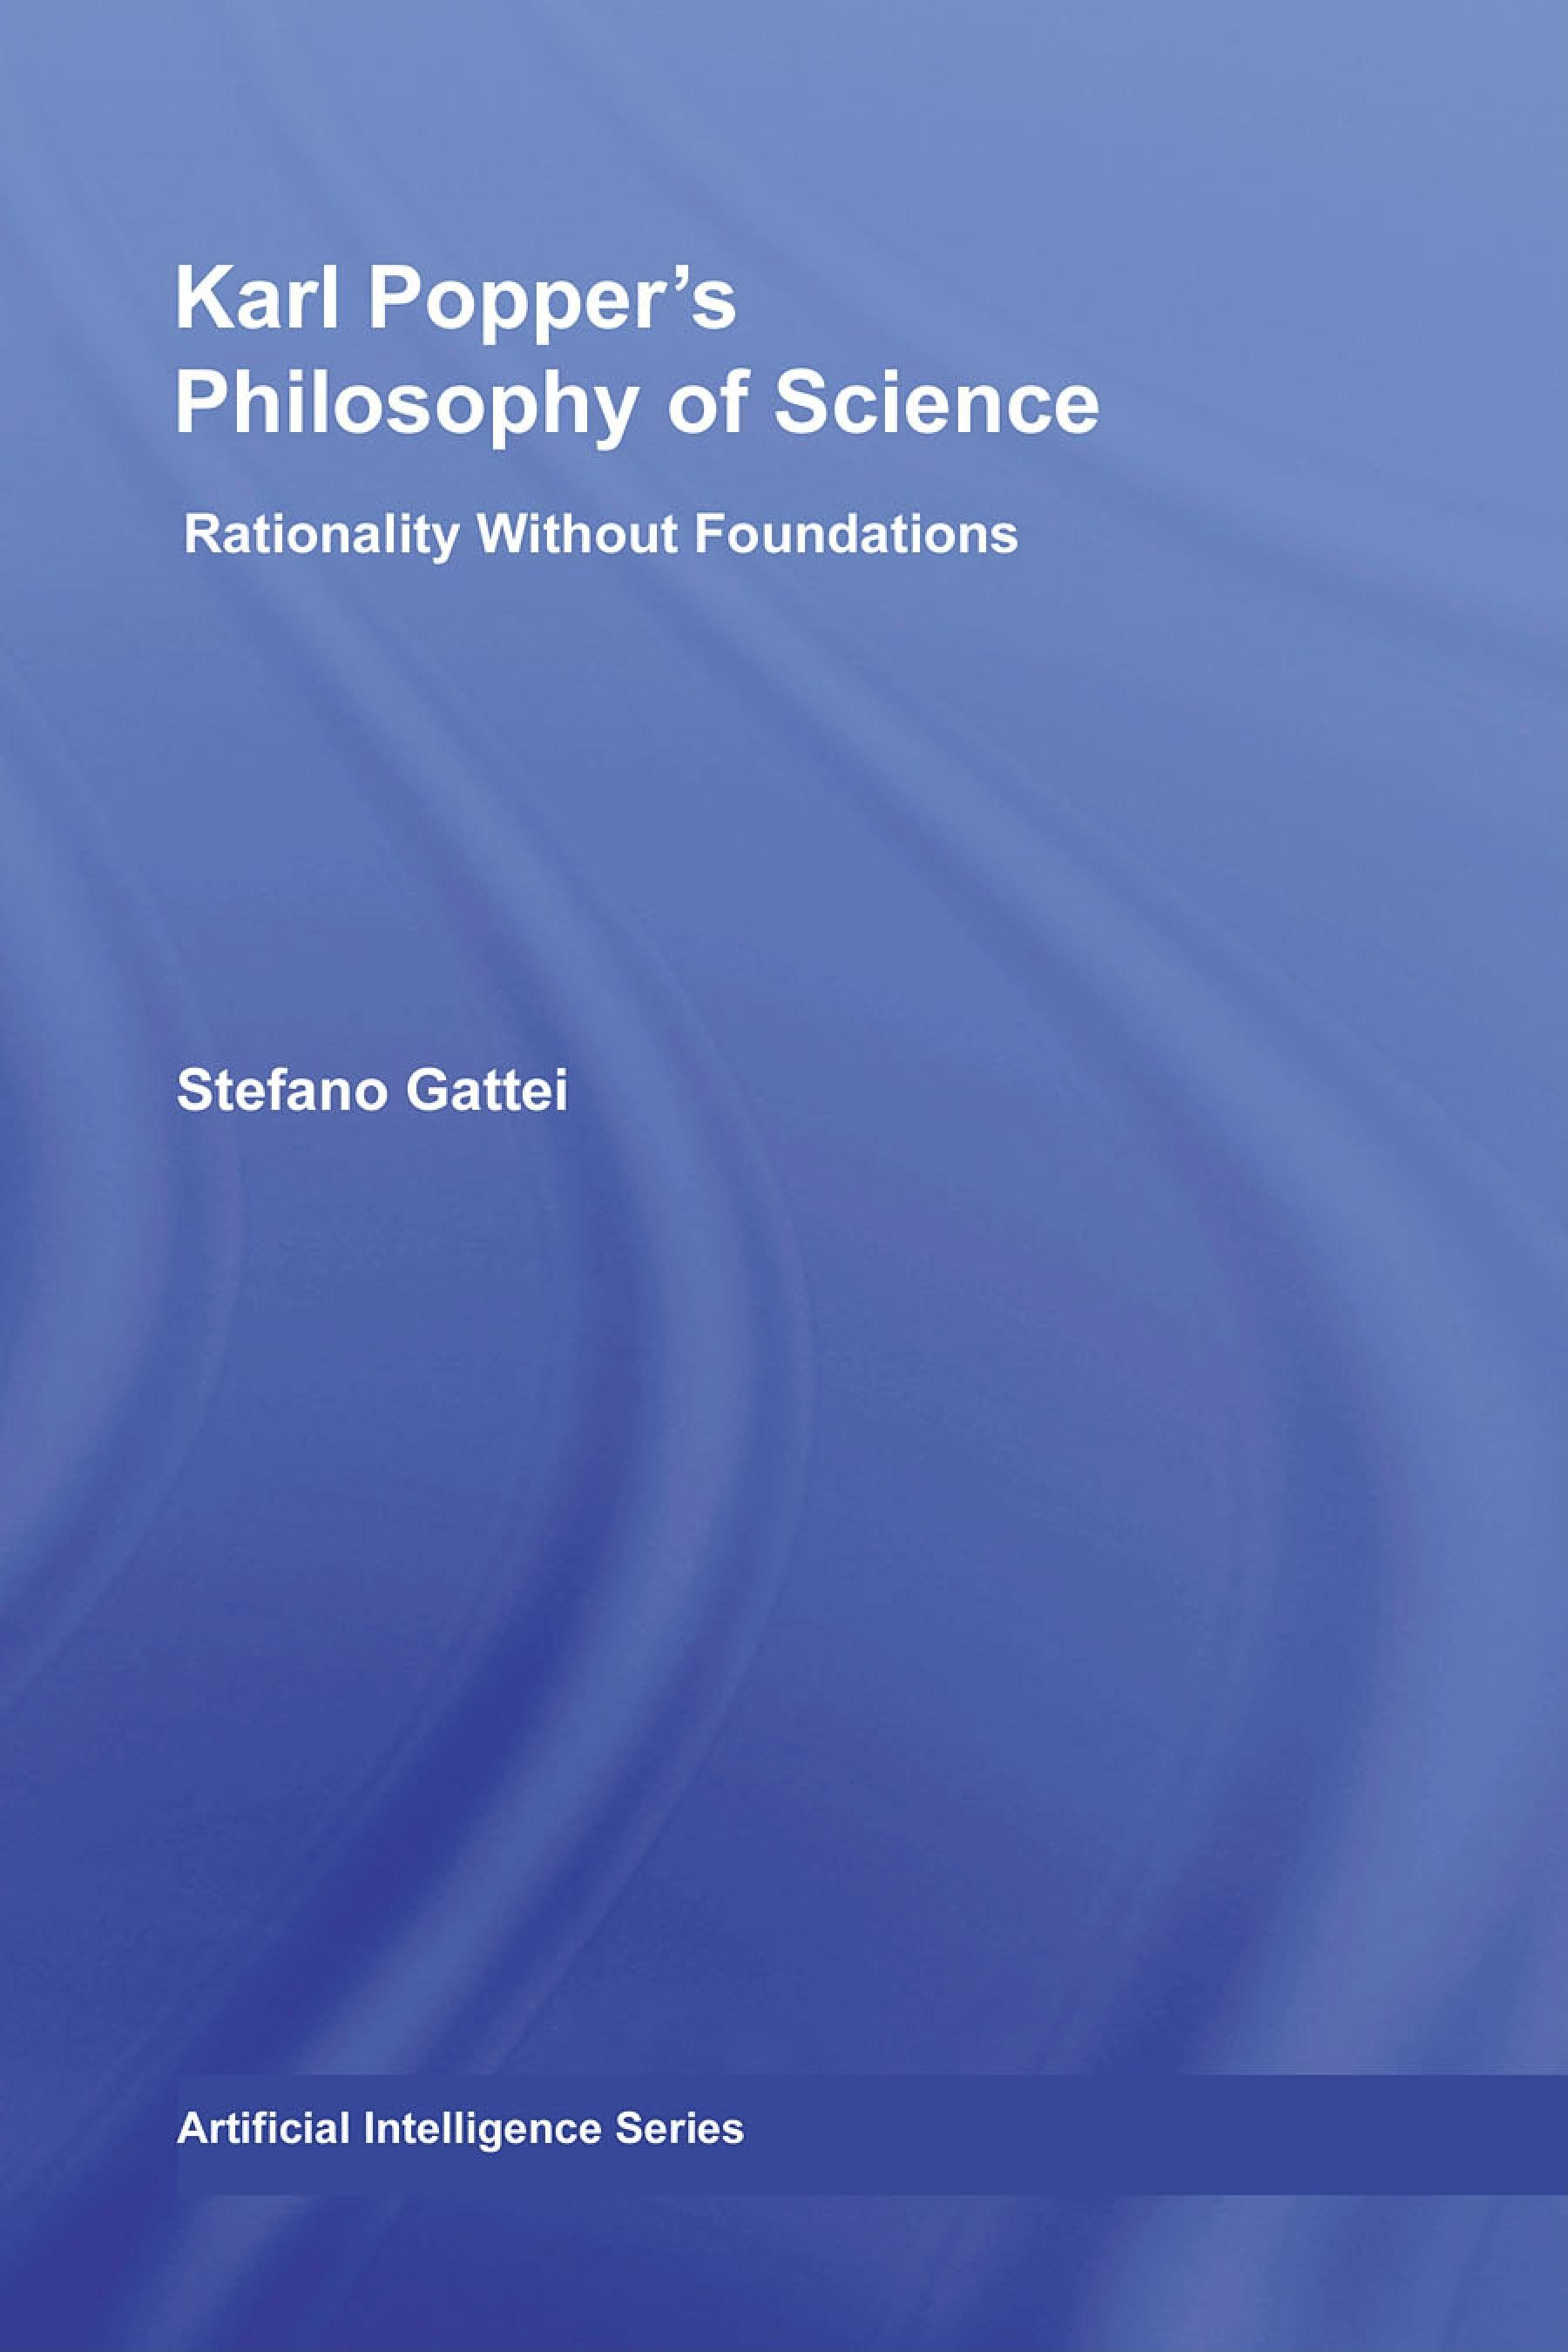 Karl Popper's Philosophy of Science: Rationality without Foundations